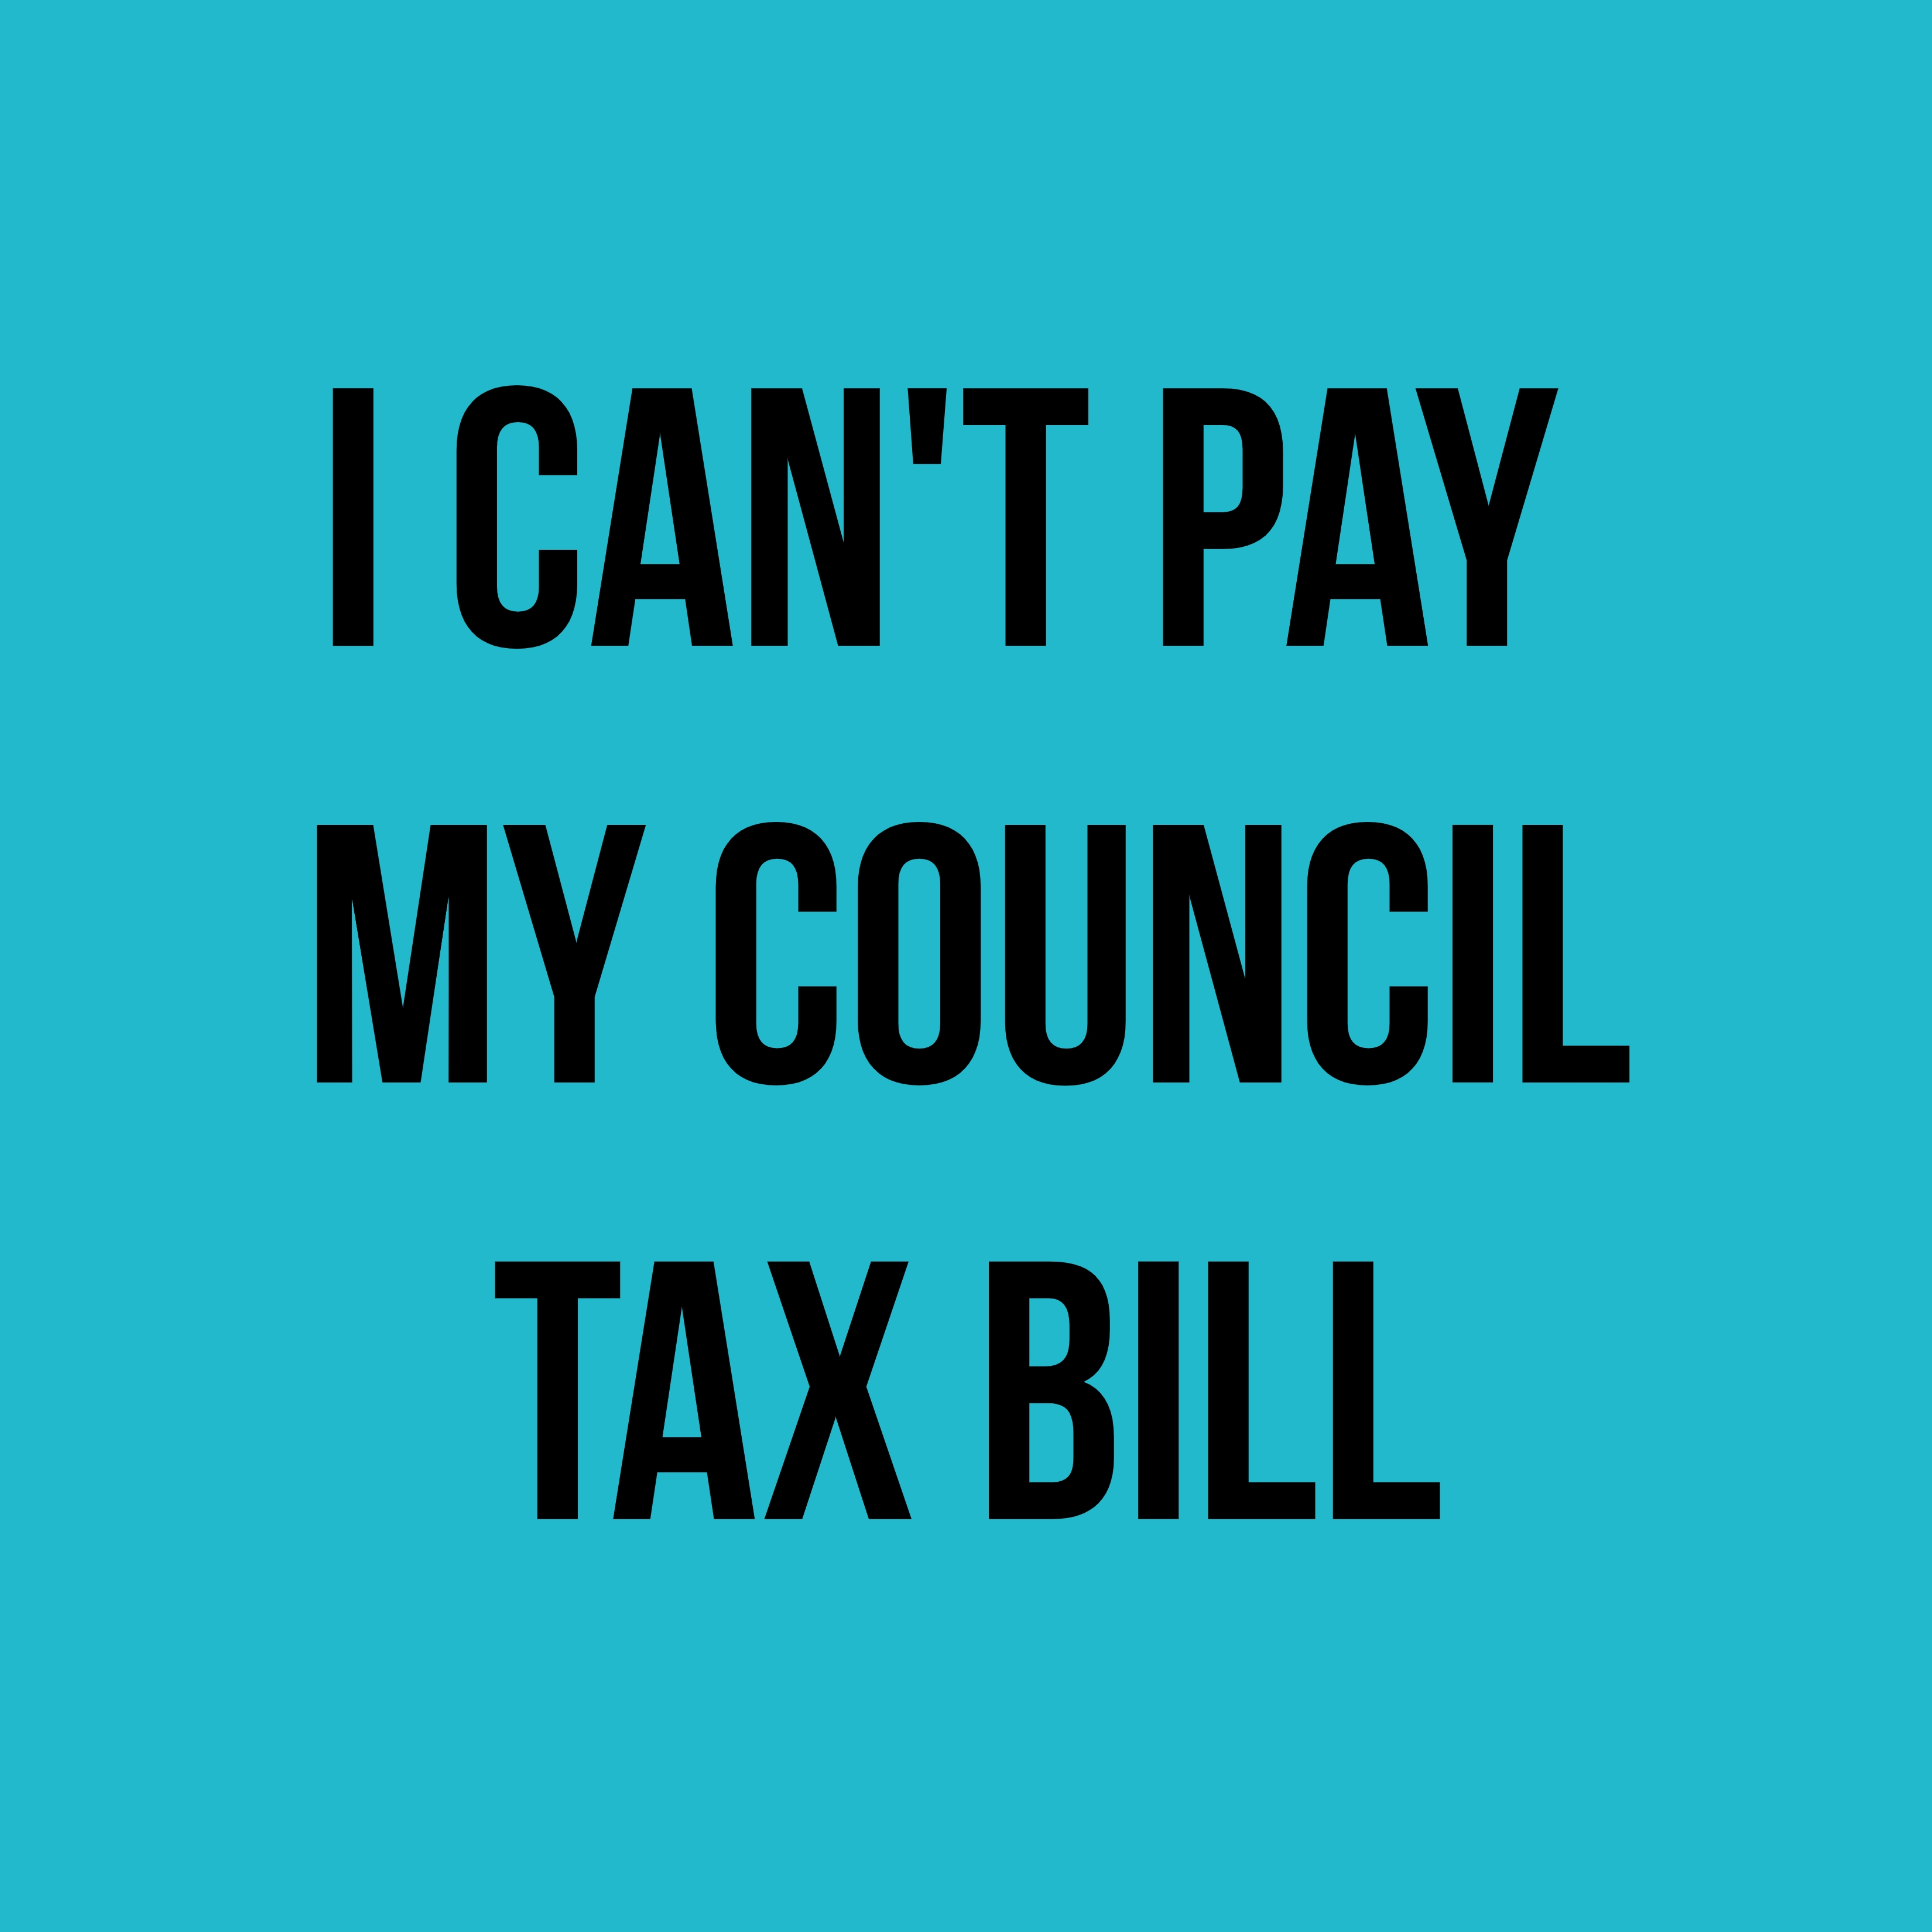 cant a council tax